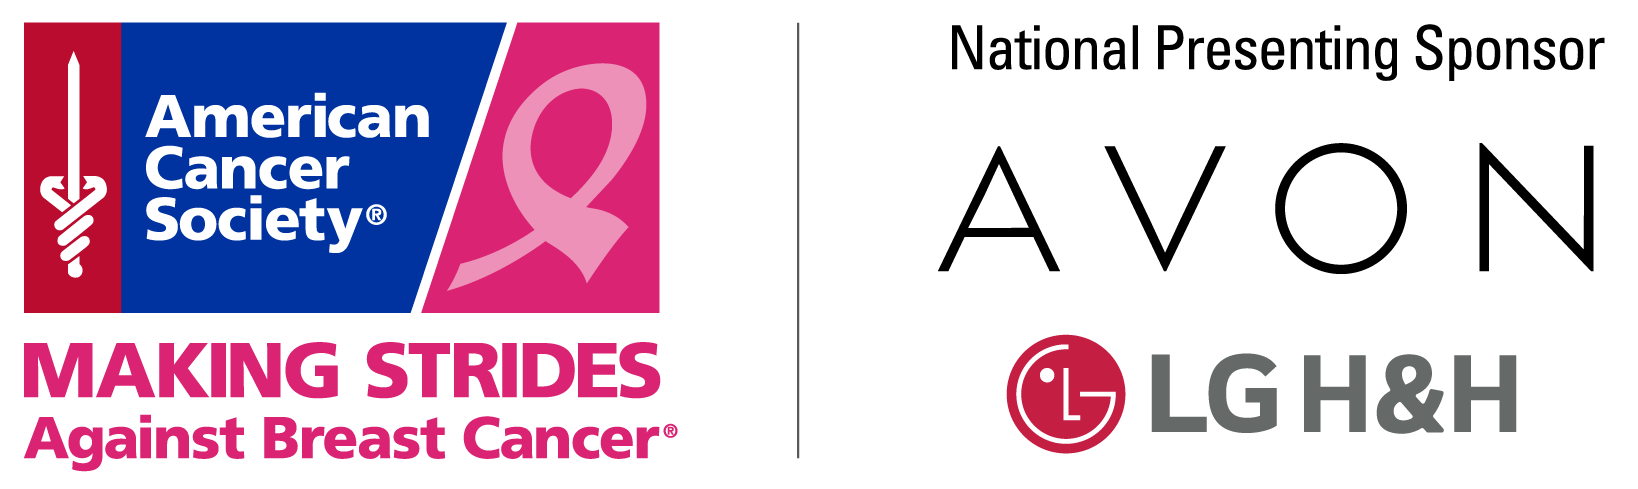 Join WOGB for Making Stride Against Breast Cancer on October 16th